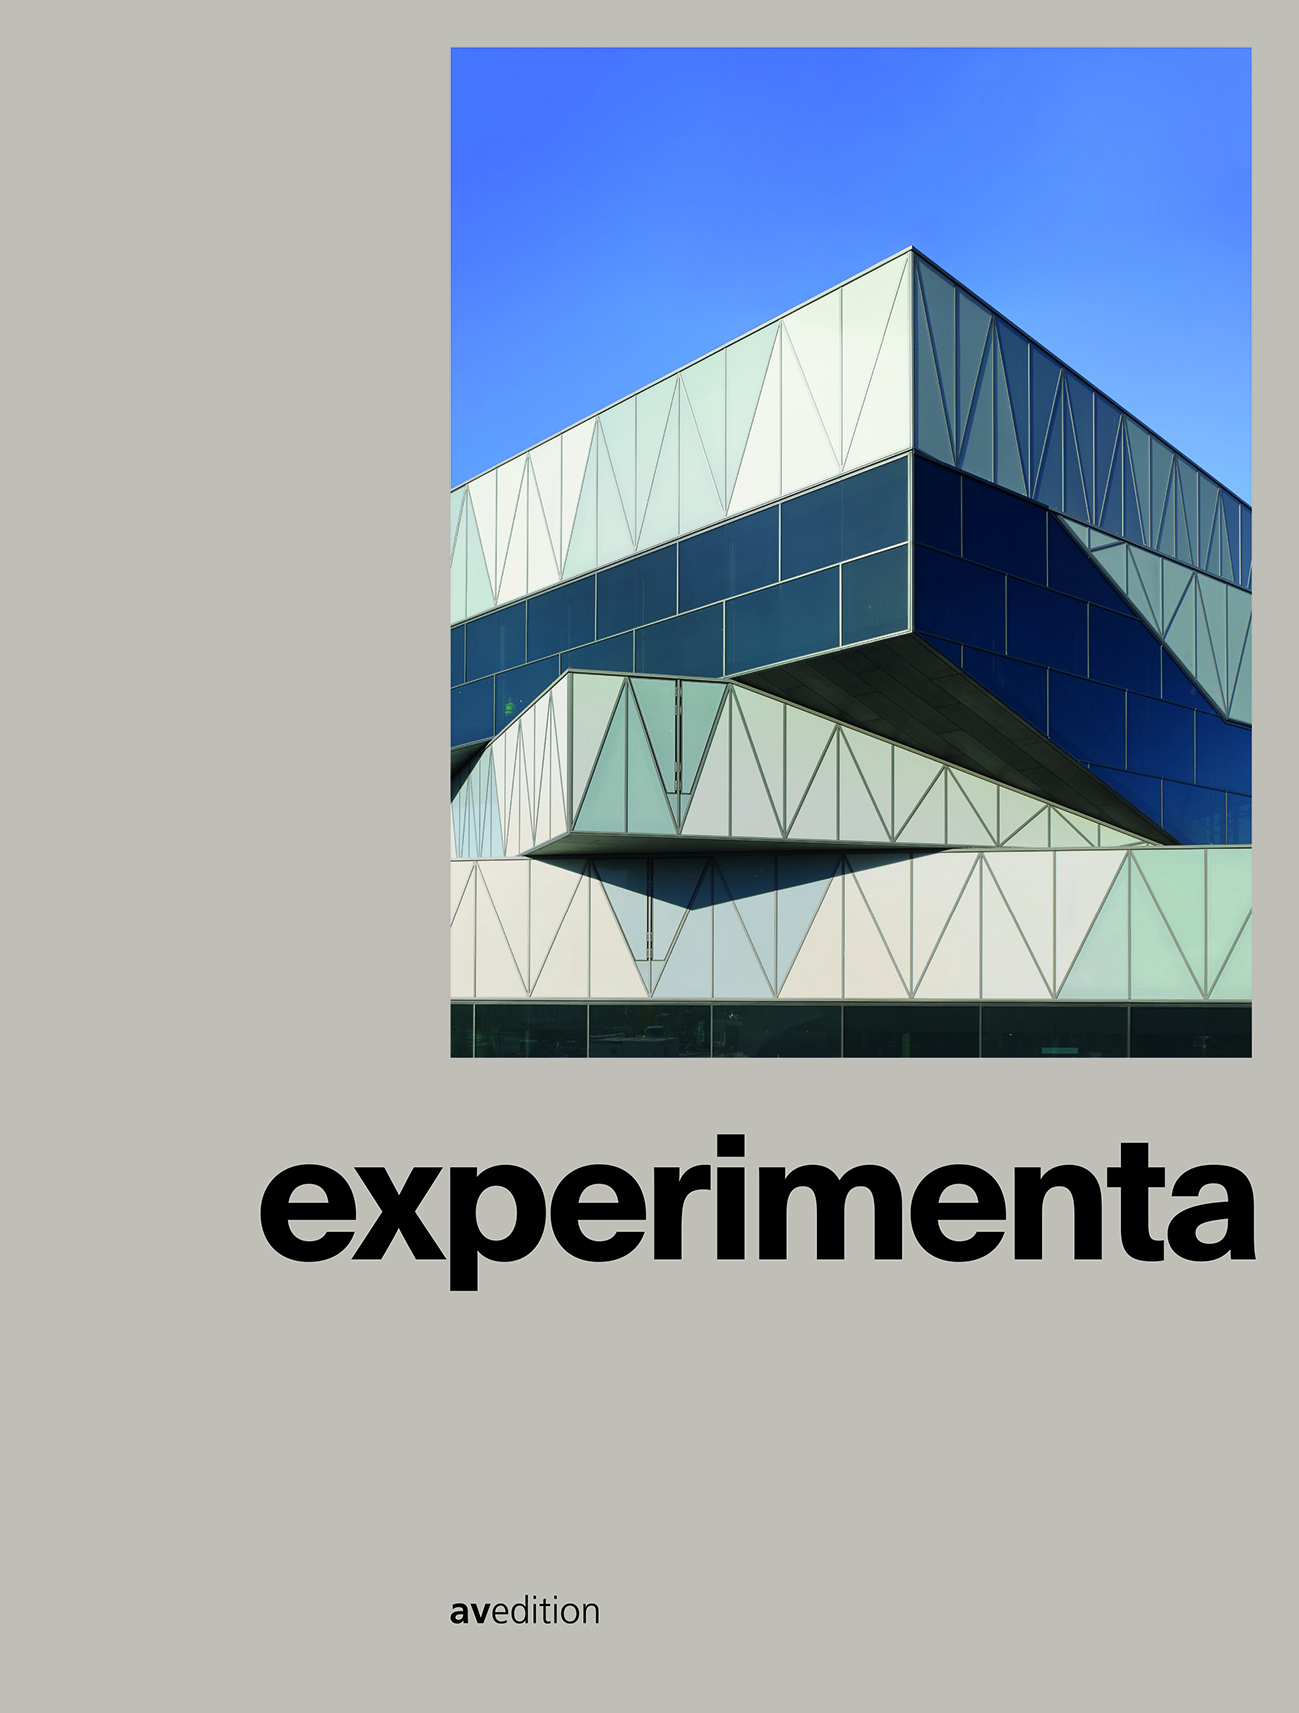 experimenta – A science center in a new dimension